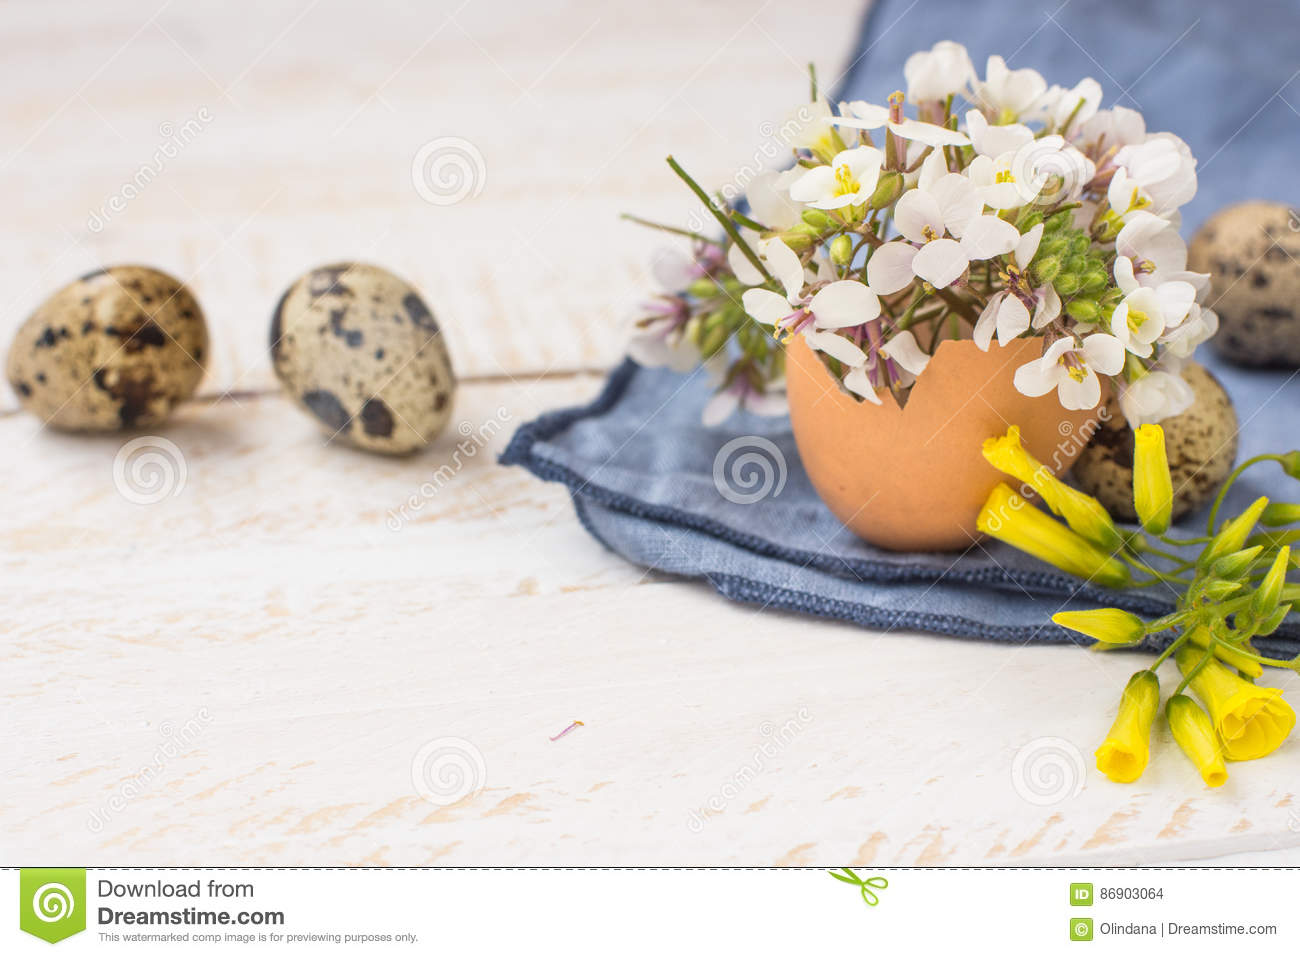 Bouquet of white yellow flowers in eggshell, quail eggs, blue napkin on wood table, Easter interior decoration